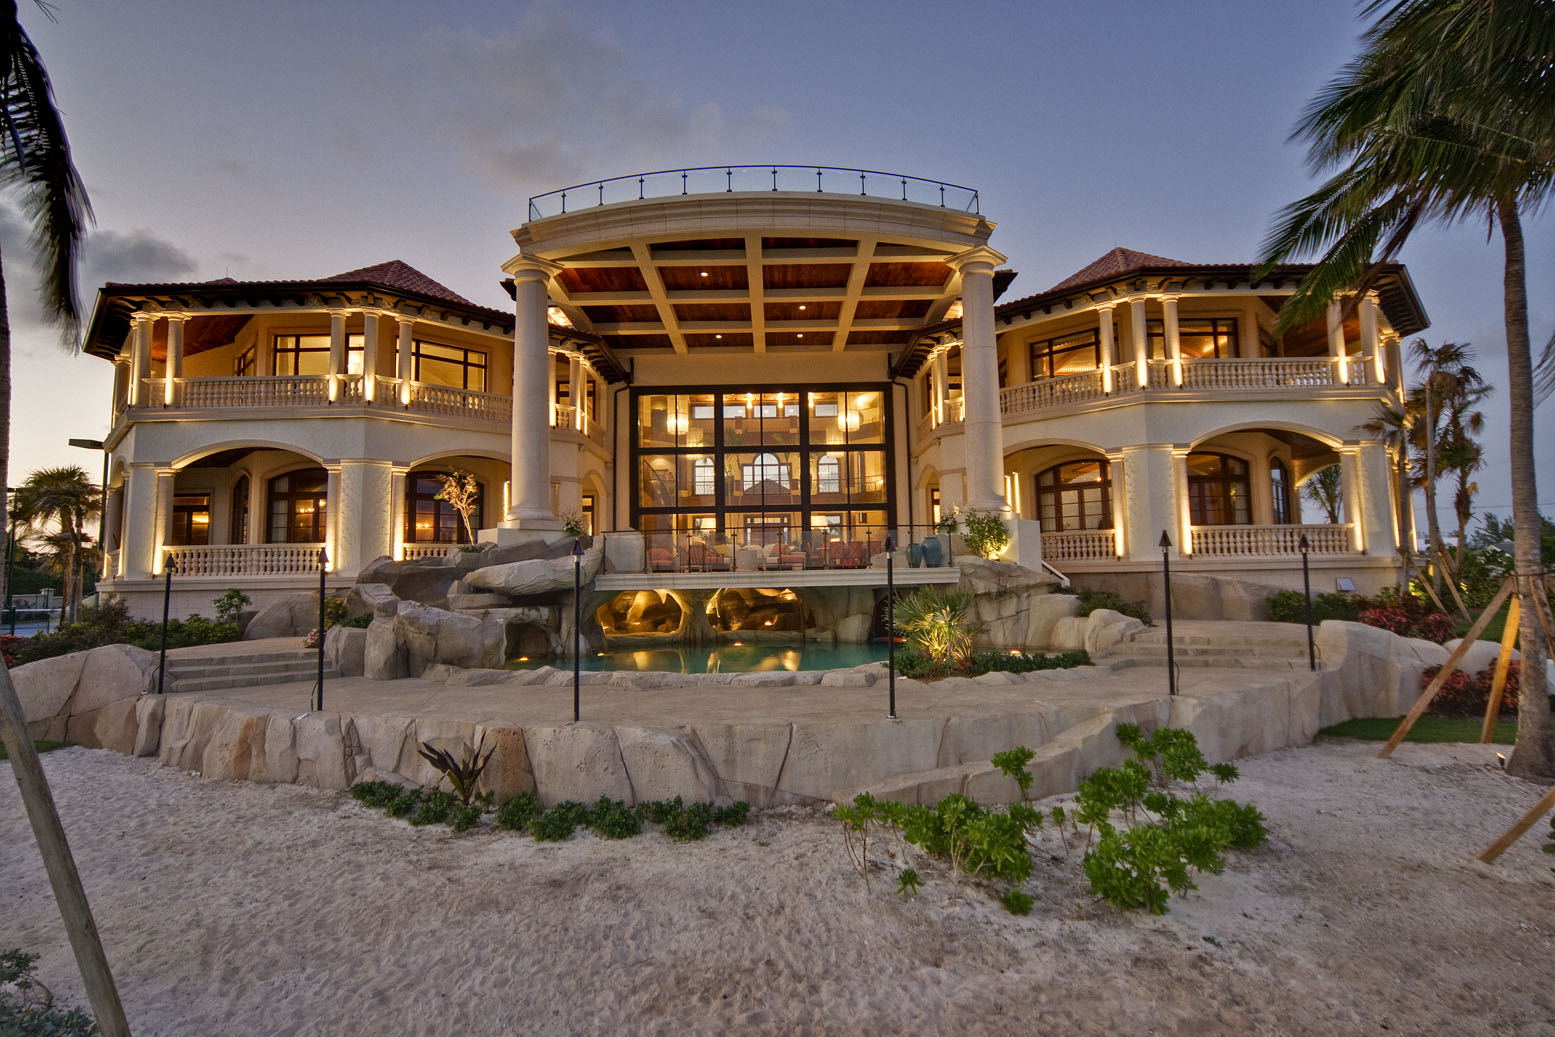 Cayman islands mega mansion homes of the rich for Amazing homes tumblr